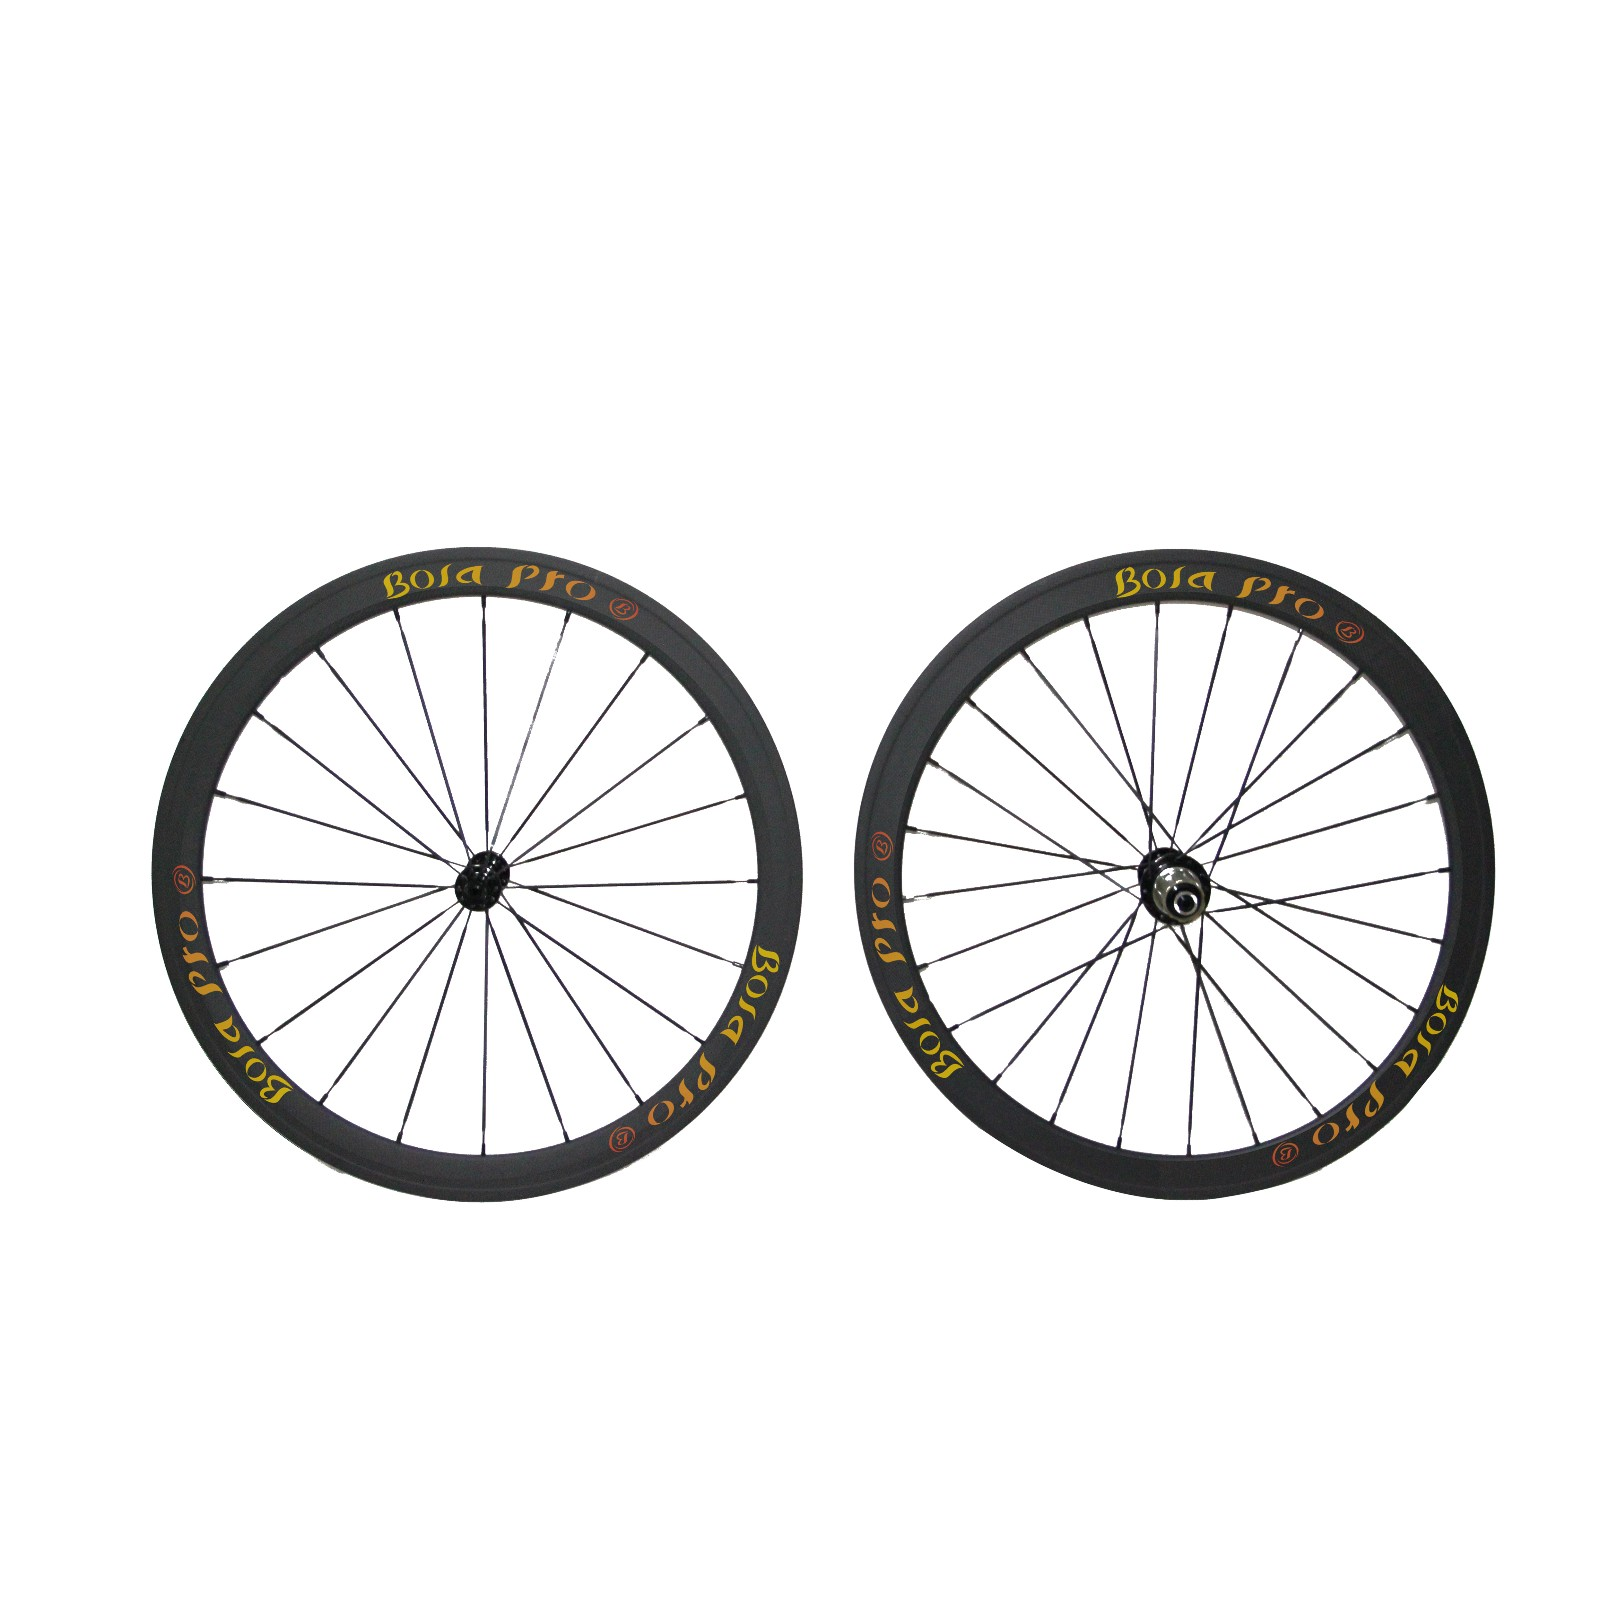 700C 38mm carbon wheelset with Novatec A271/F372 hub